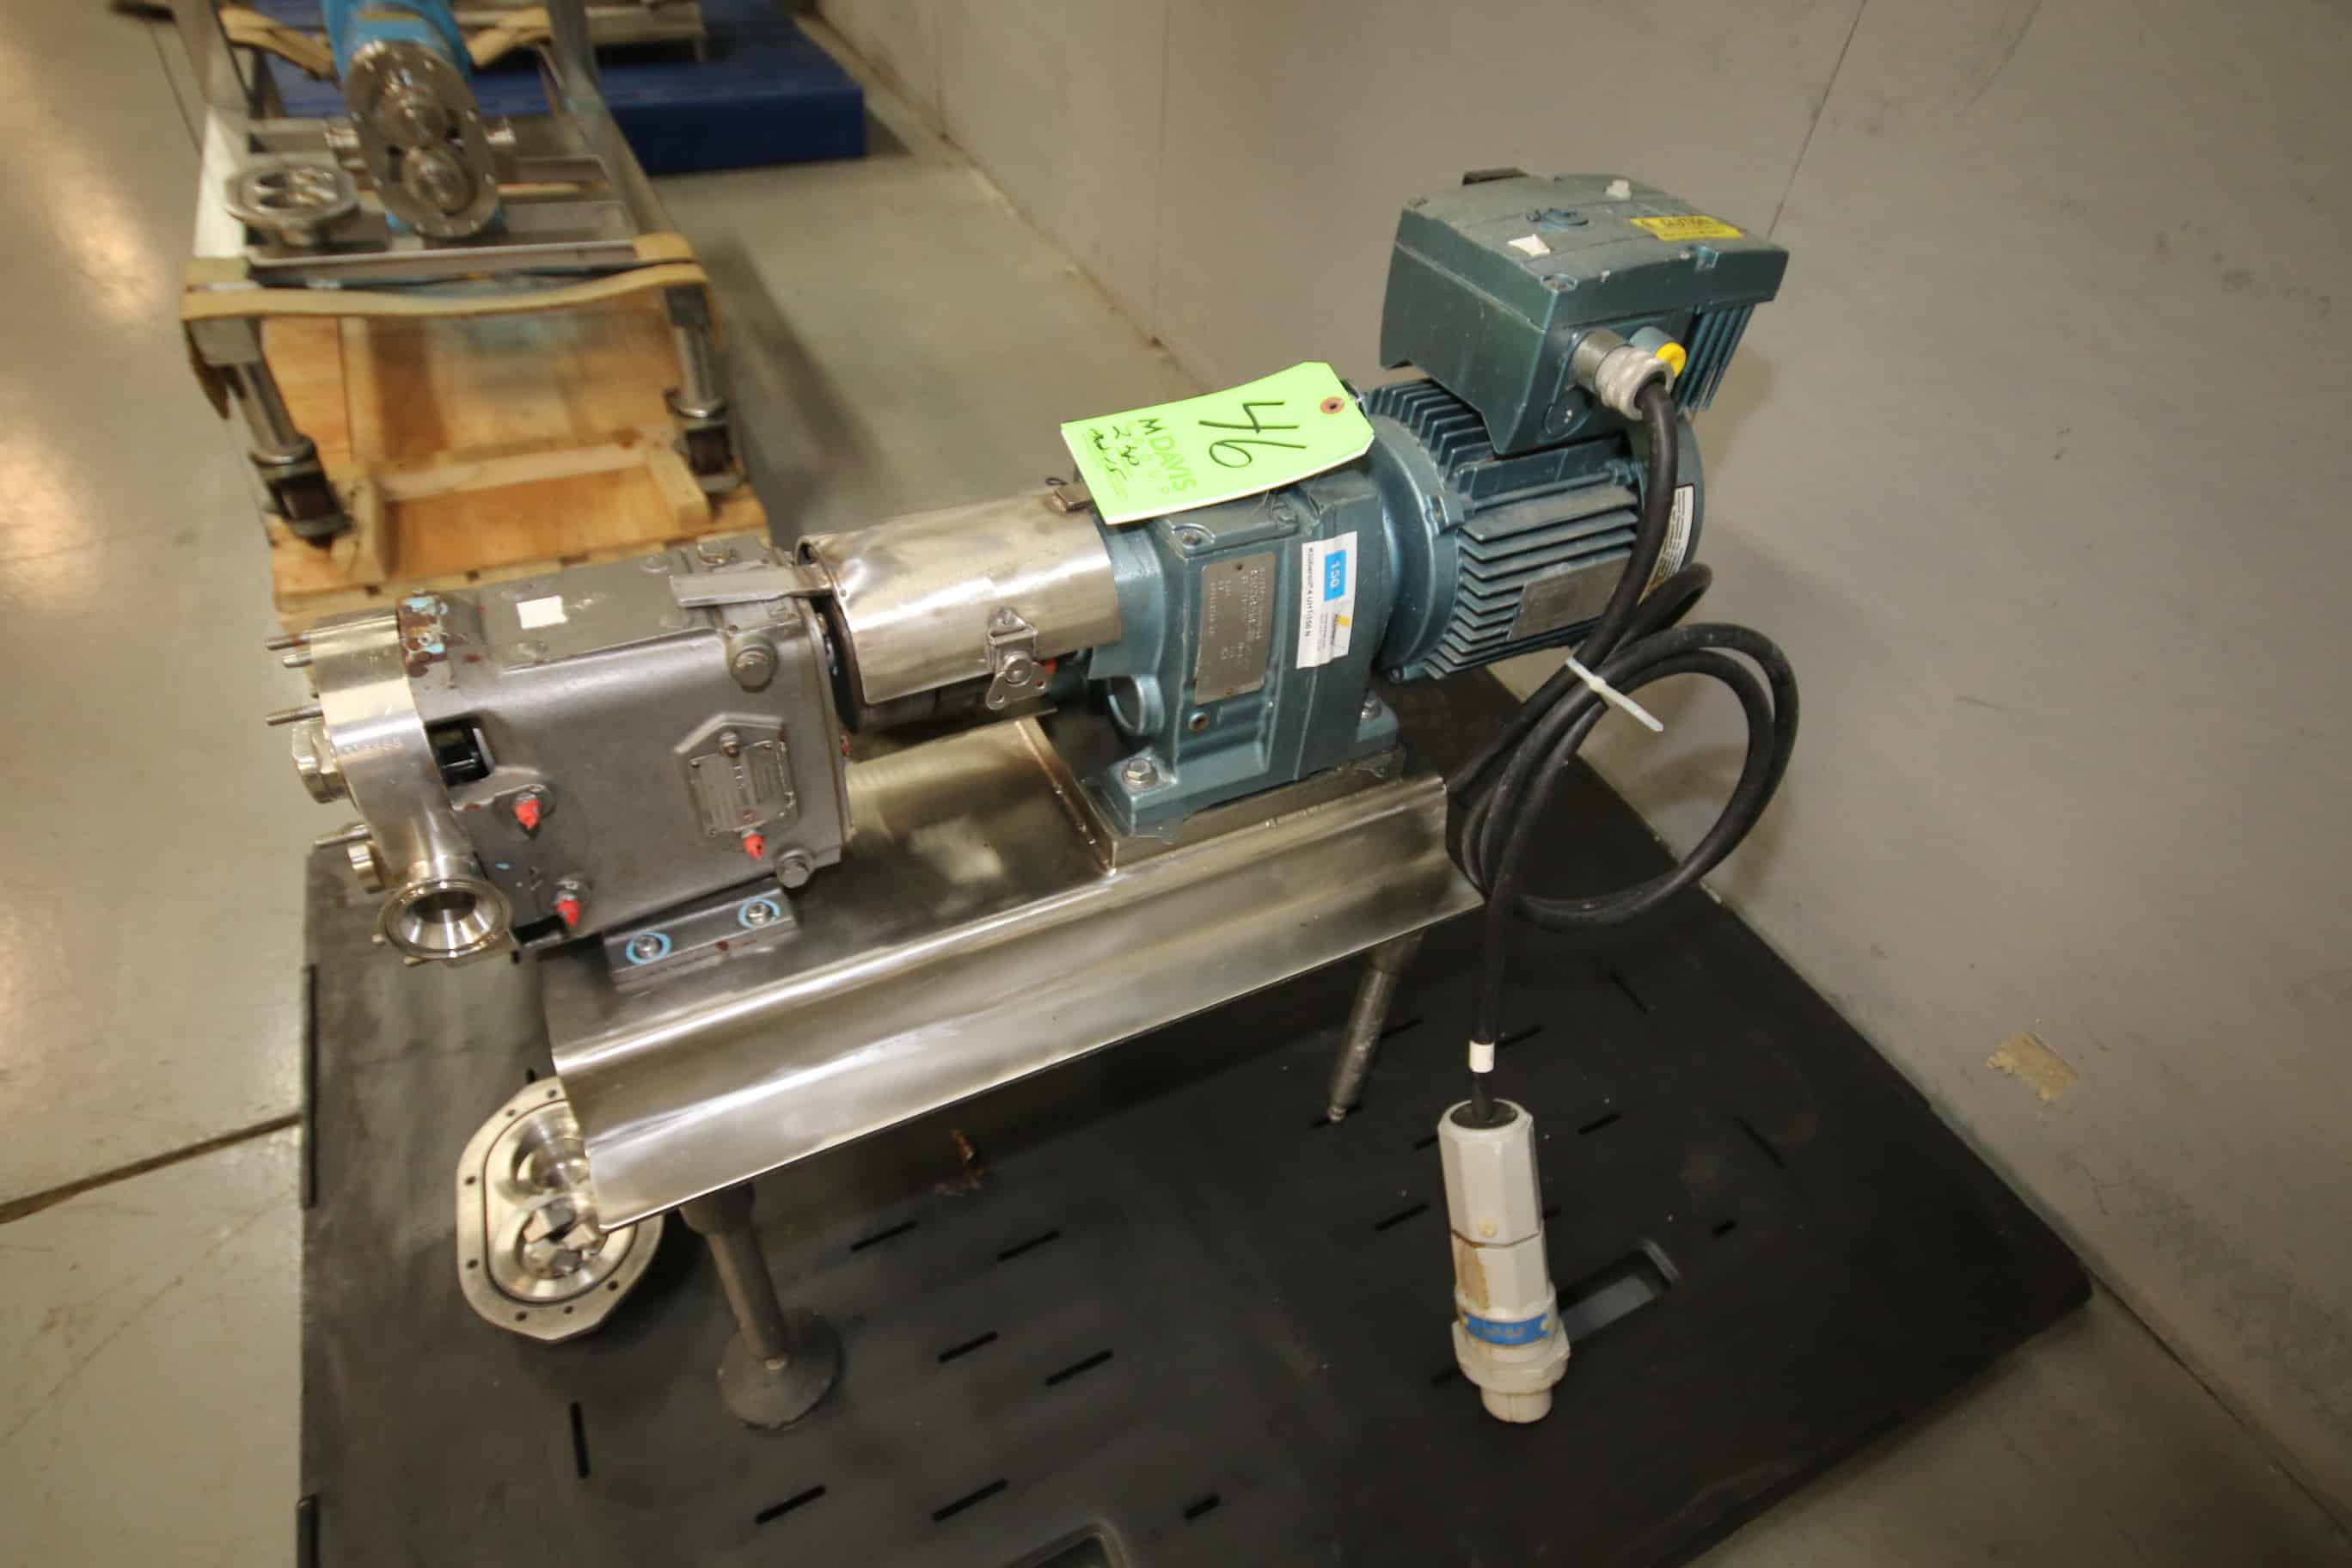 "Waukesha/Cherry Burrell Positive Displacement Pump, Model 15, S/N 116185 with 1-1/2"" x 1-1/2"" Clamp Type S/S Head, Mobilgear 630 Gear Ratio 5.64, Sew 2 hp Drive Motor, 213-1720 RPM, 460Y V, 3 Phase, Mounted on S/S Frame"